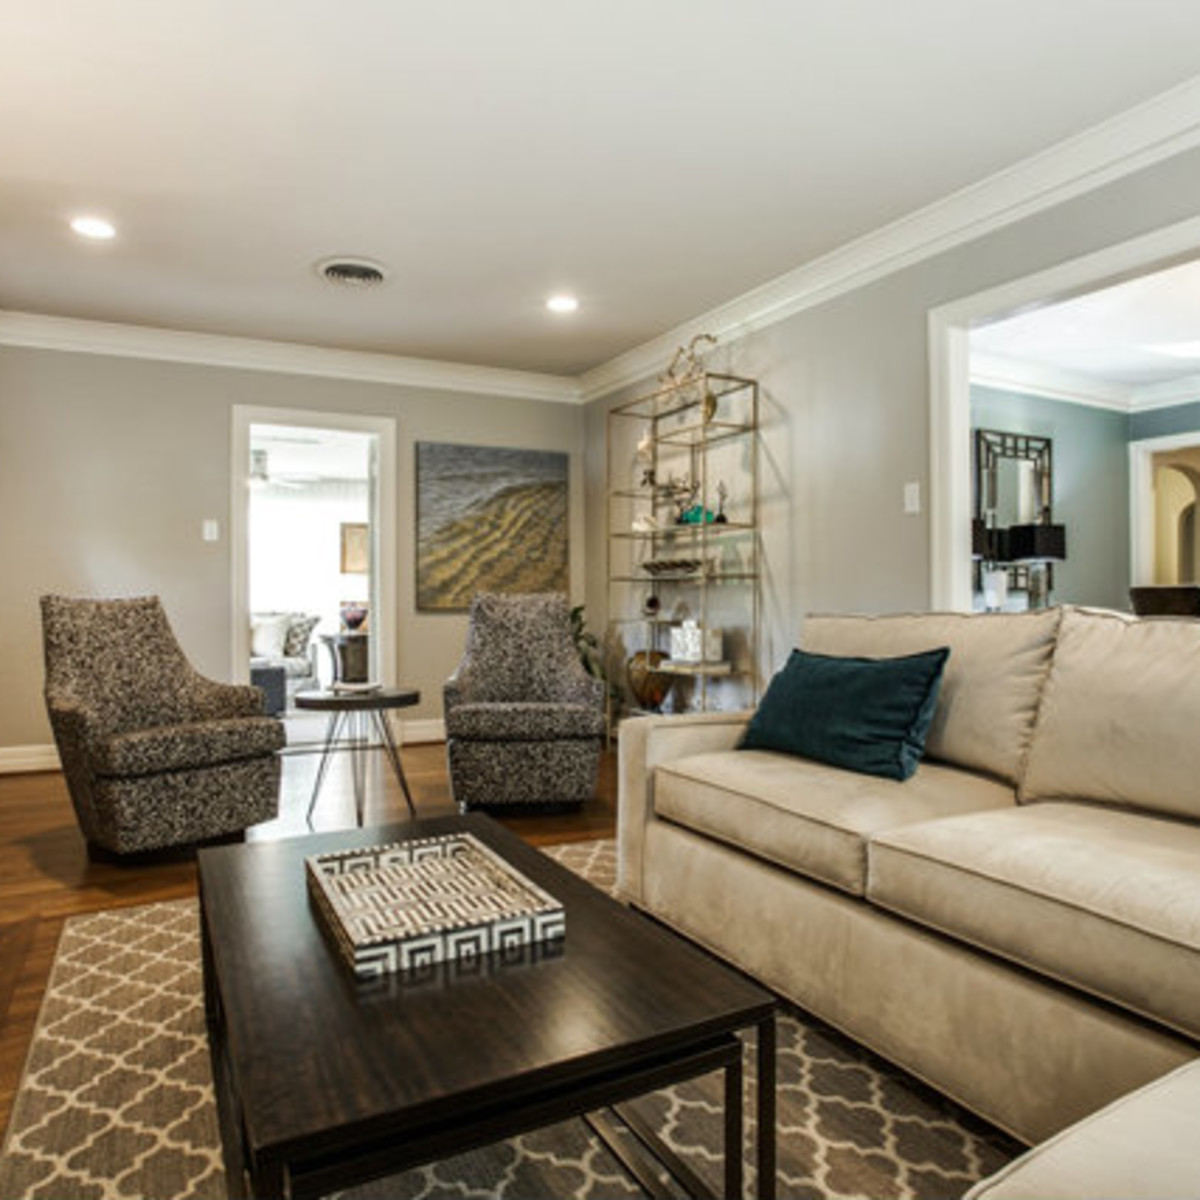 Living room at 811 Monte Vista Dr. in Dallas